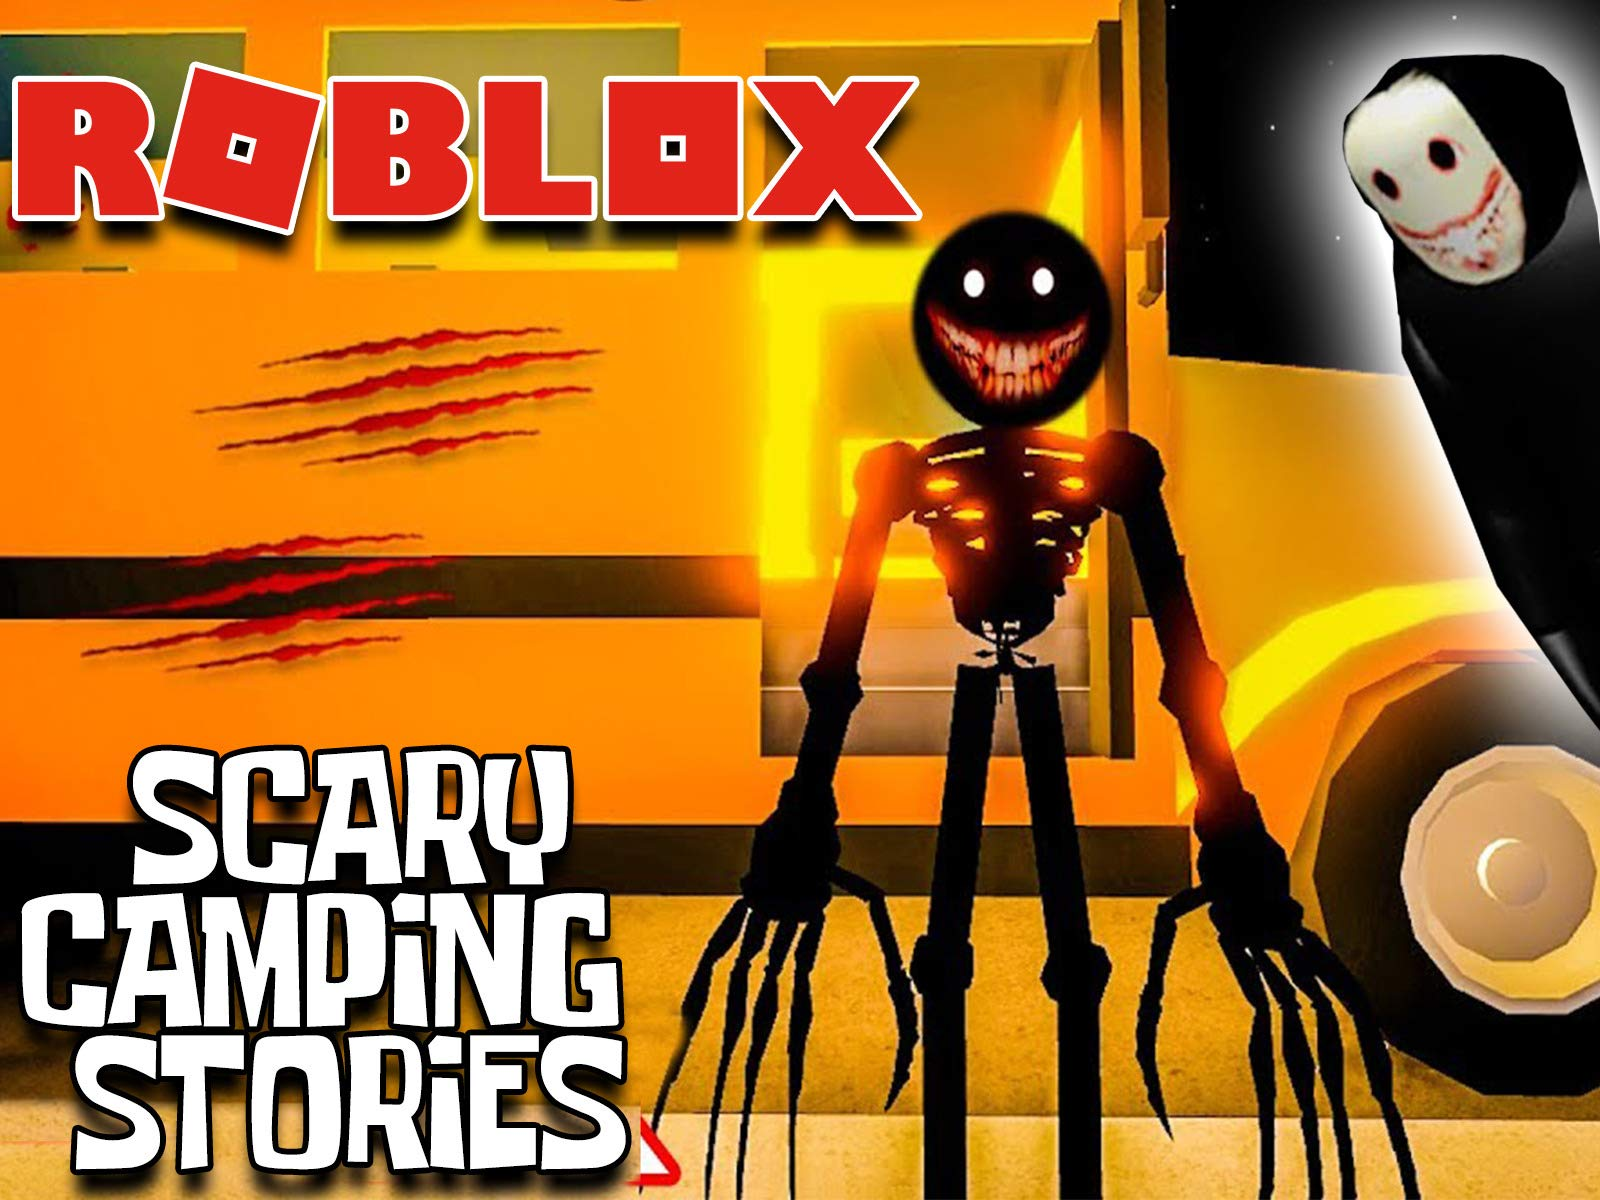 Watch Clip Roblox Scary Camping Stories Prime Video